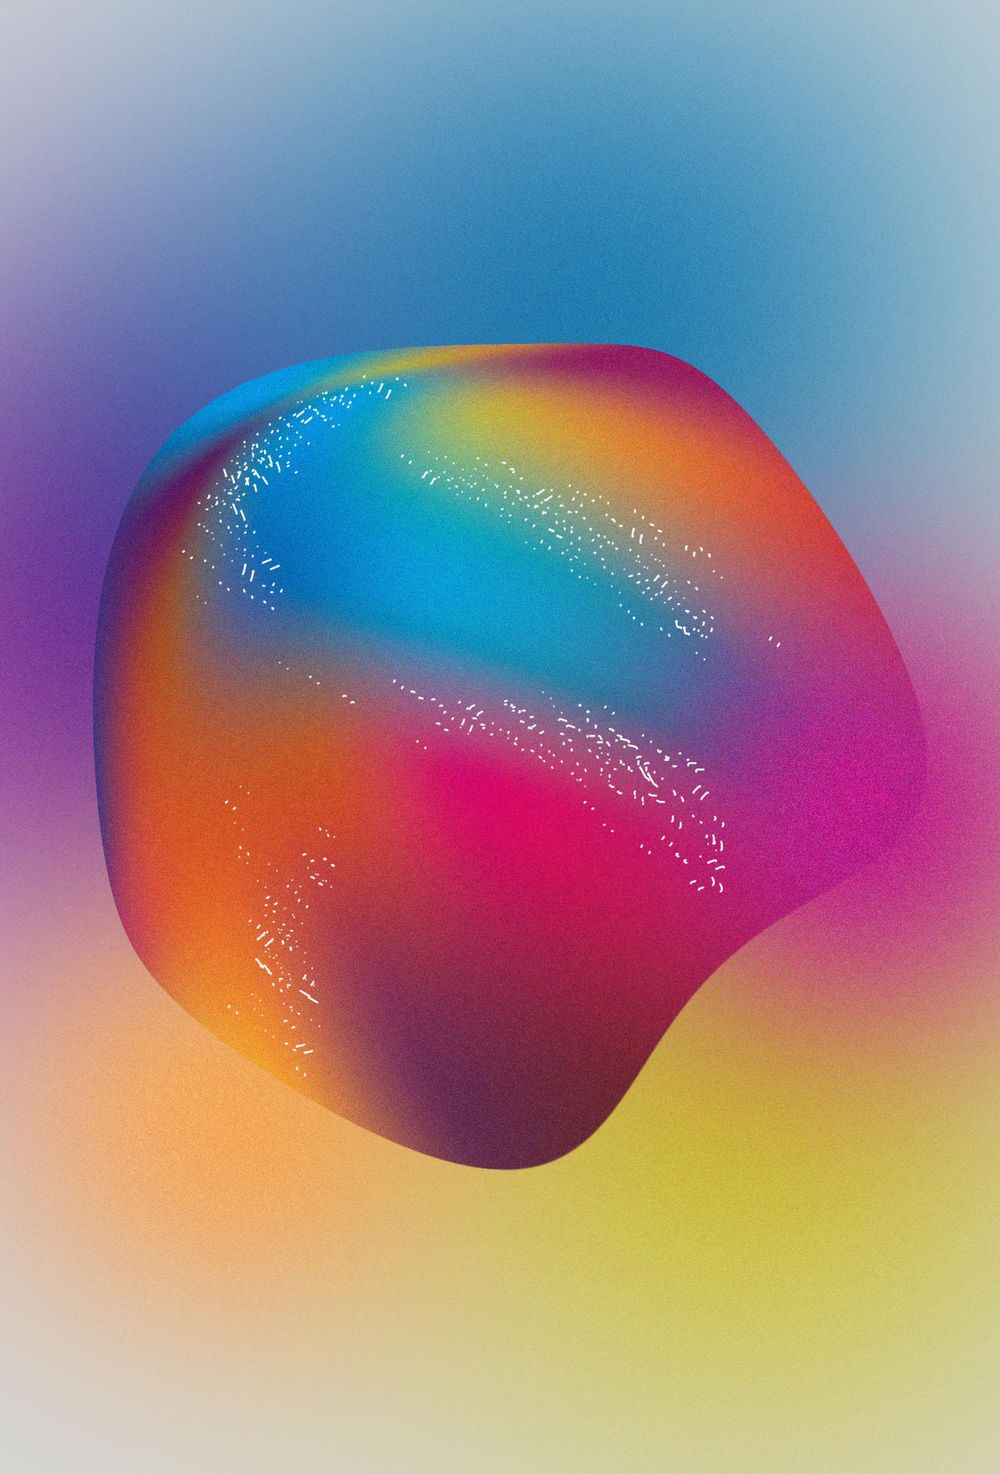 Gradient2 - image 1 - student project